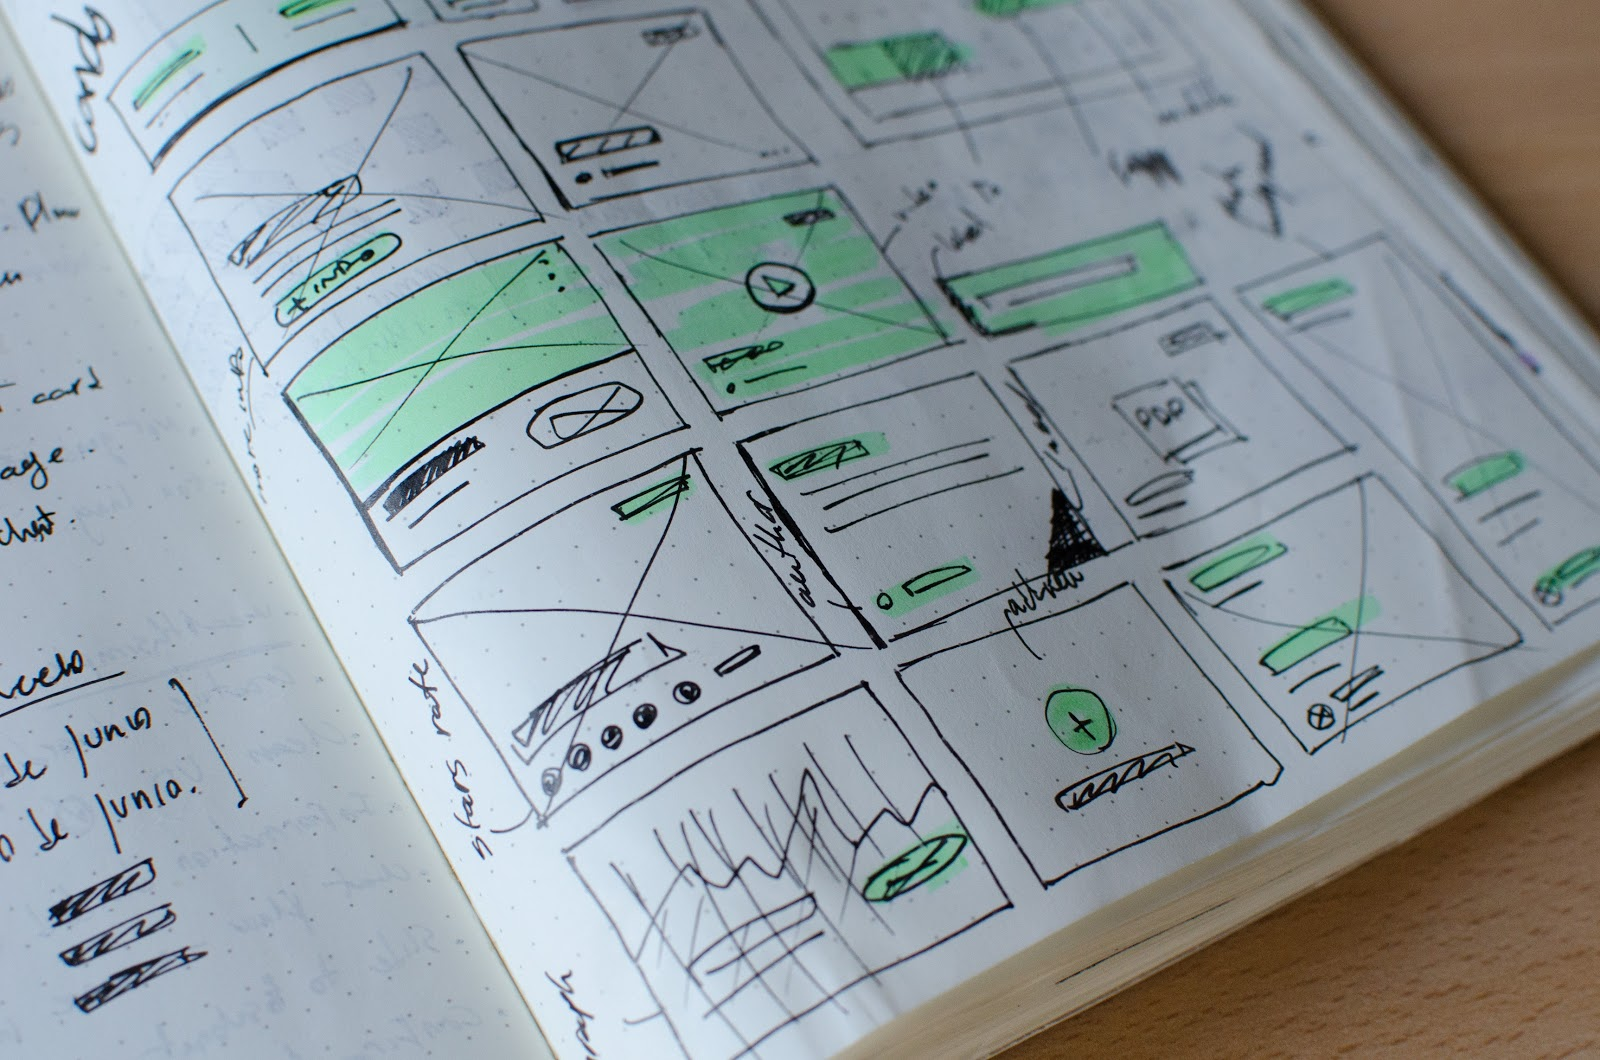 UX experience elements to engage users